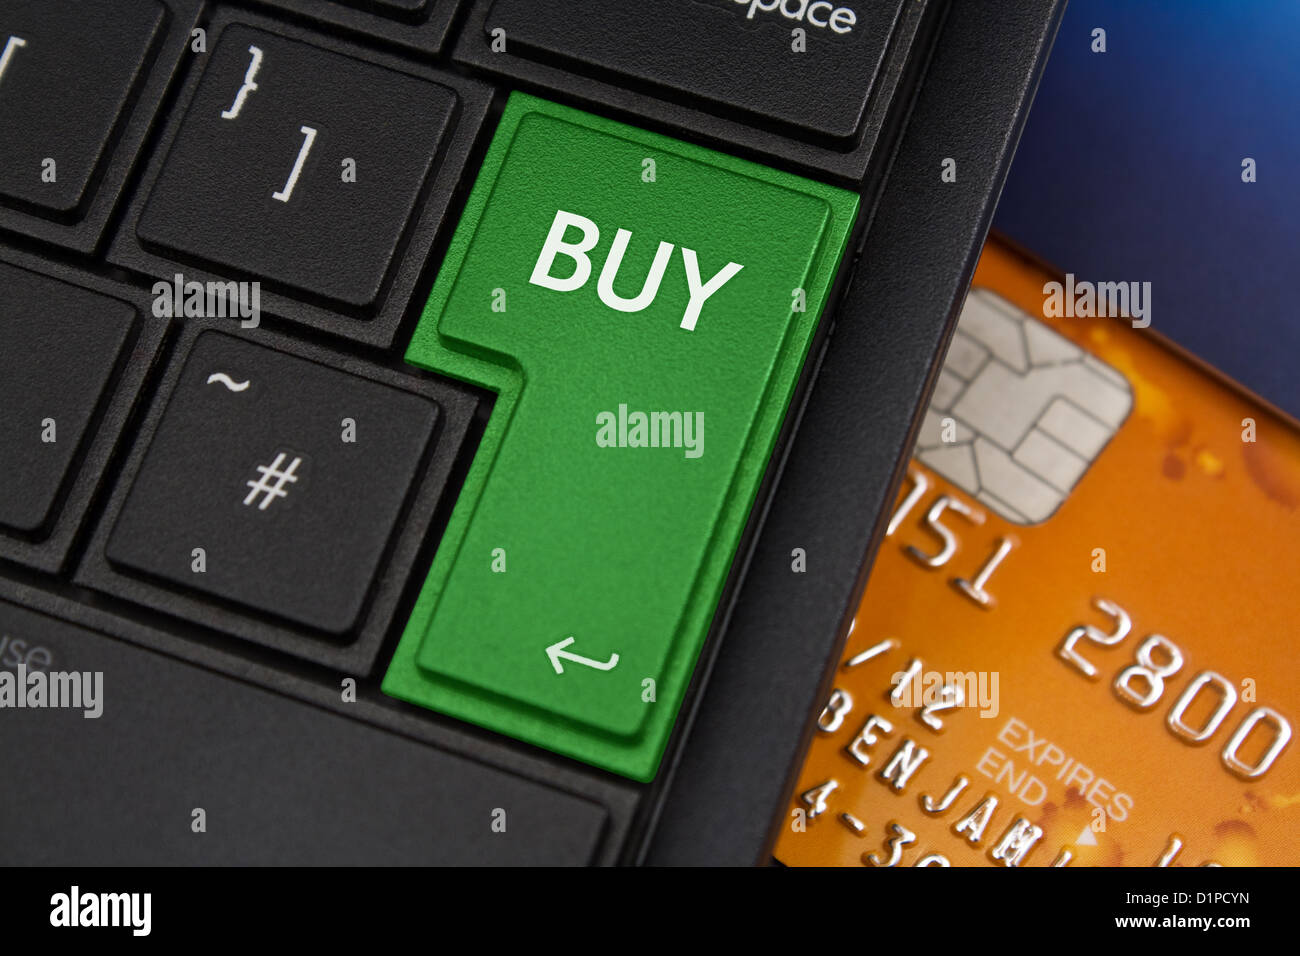 Buy Enter Key on a modern laptop qwerty keyboard with bank smart card underneath to represent online shopping - Stock Image